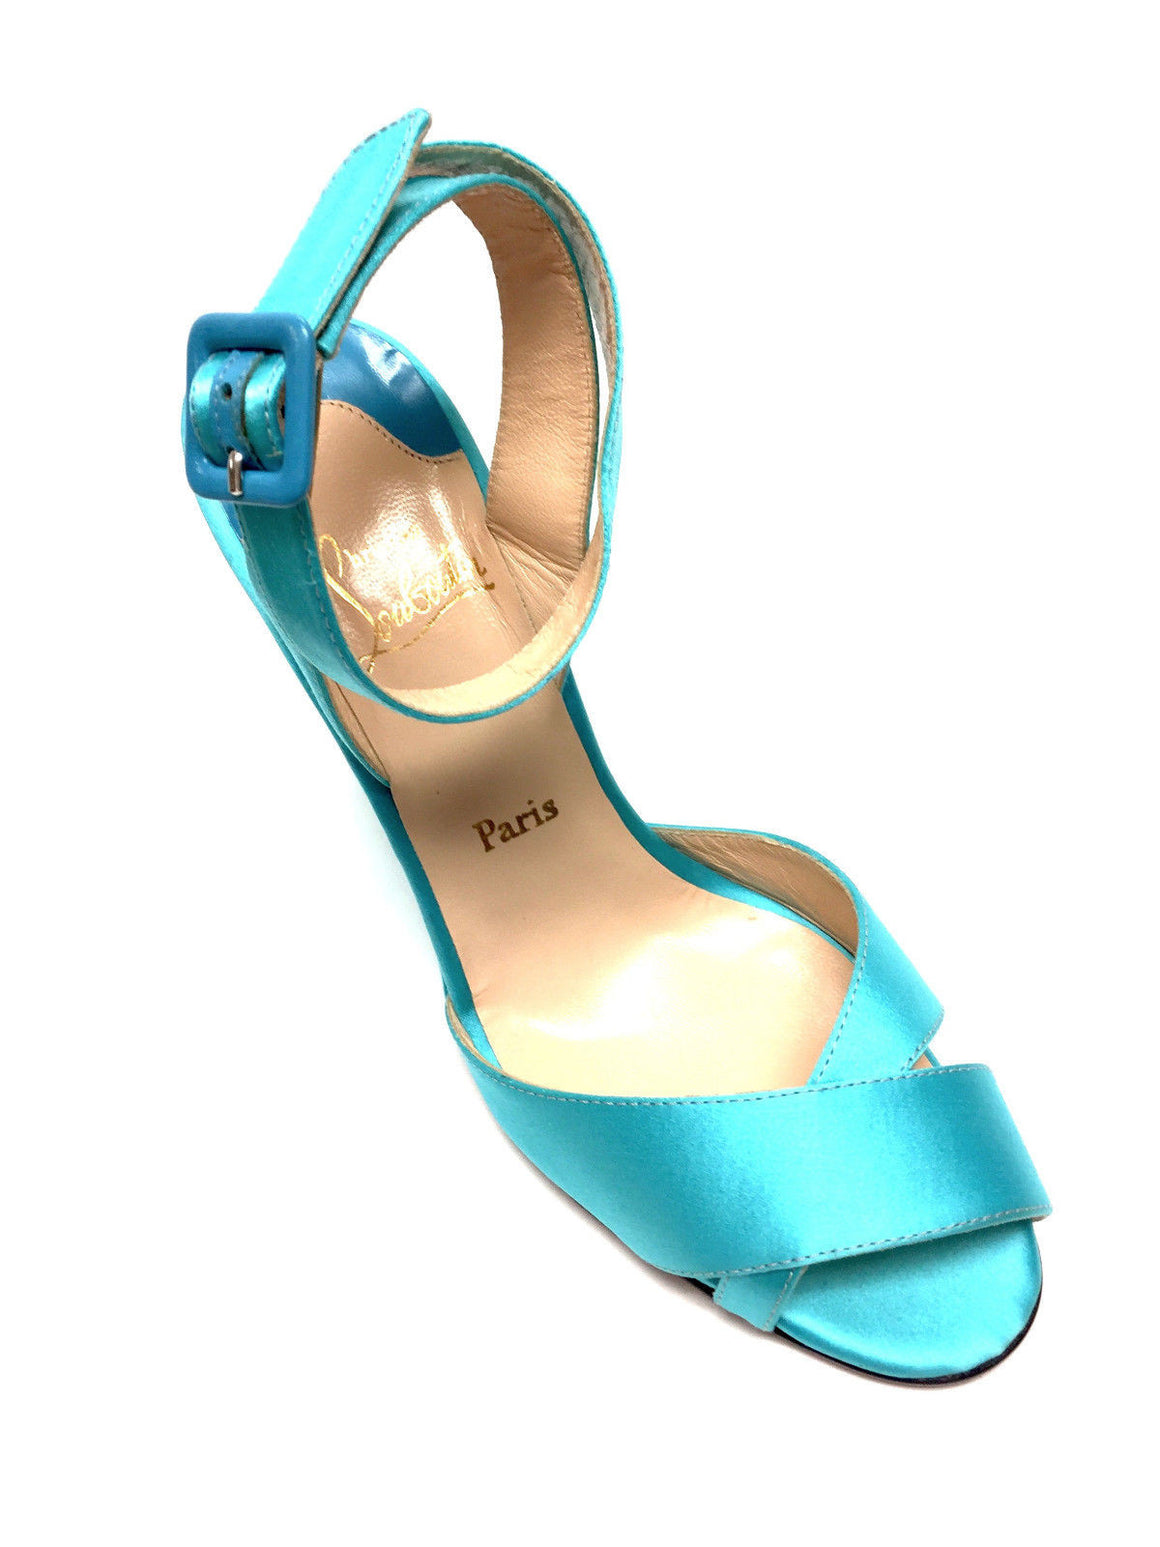 bisbiz.com CHRISTIAN LOUBOUTIN   Turquoise Satin Silk Ankle-Strap Wedge-Heel Sandals  Size: 42 / 11 - Bis Luxury Resale